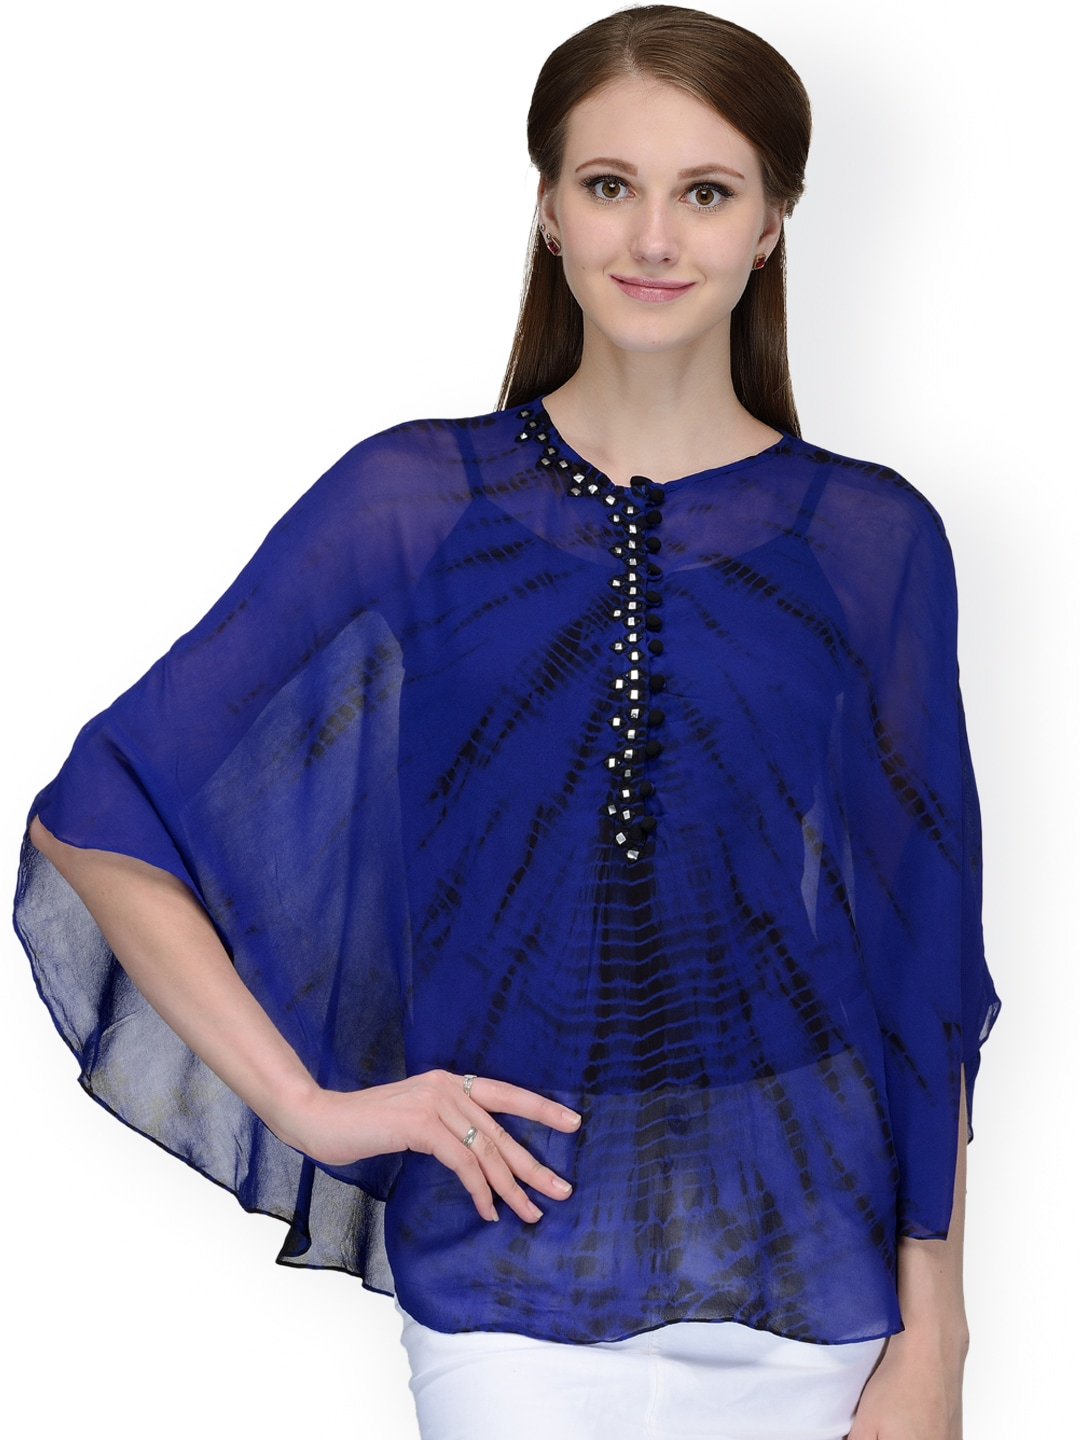 Bitterlime Blue Tie-Dyed Georgette Cape Top